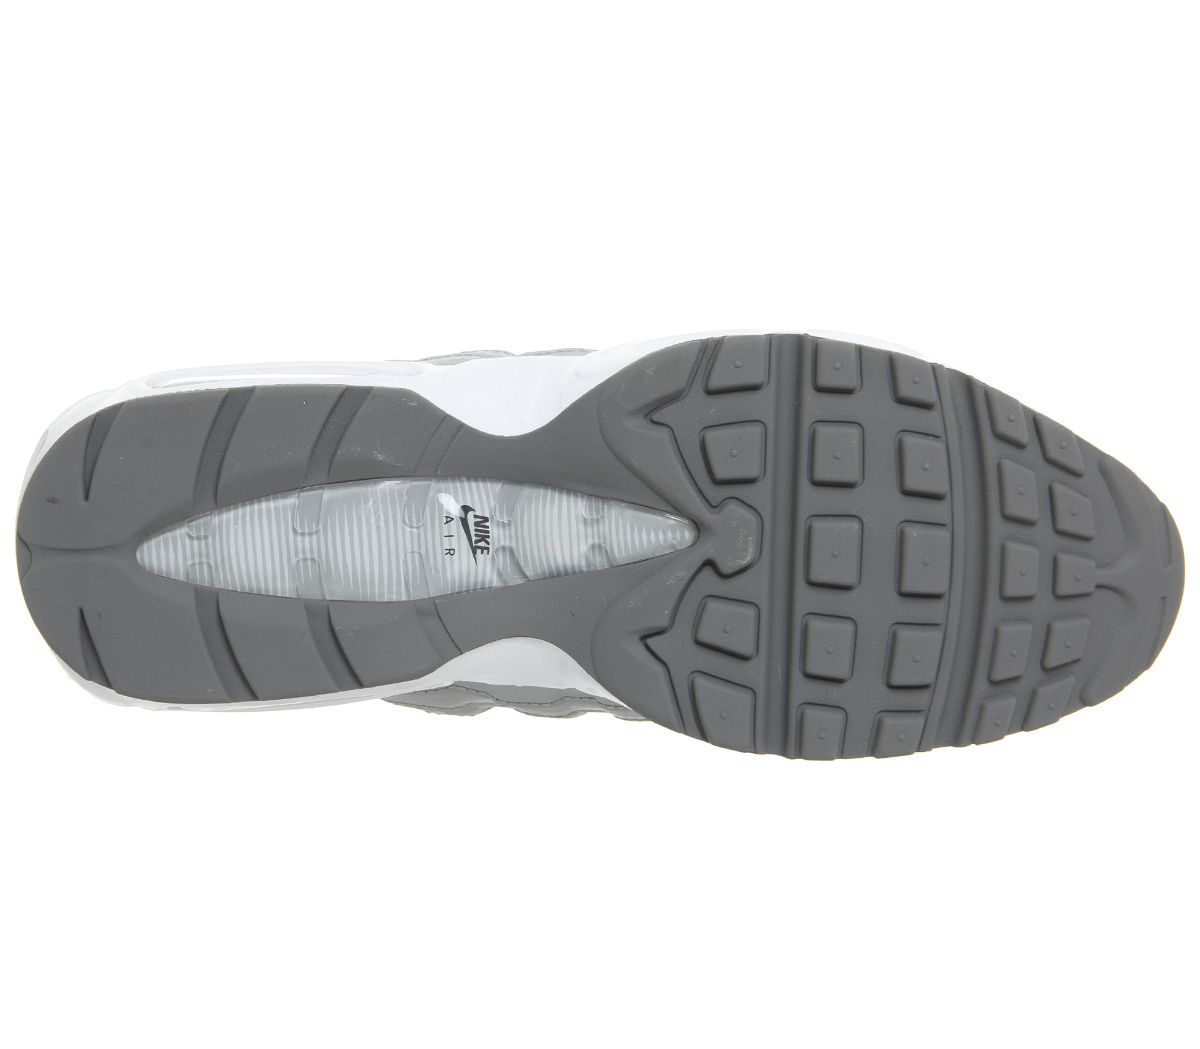 4f868d04a9 Air Max 95 Trainers. Double tap to zoom into the image. Nike, Air Max 95  Trainers, Wolf Grey Black White Cool ...